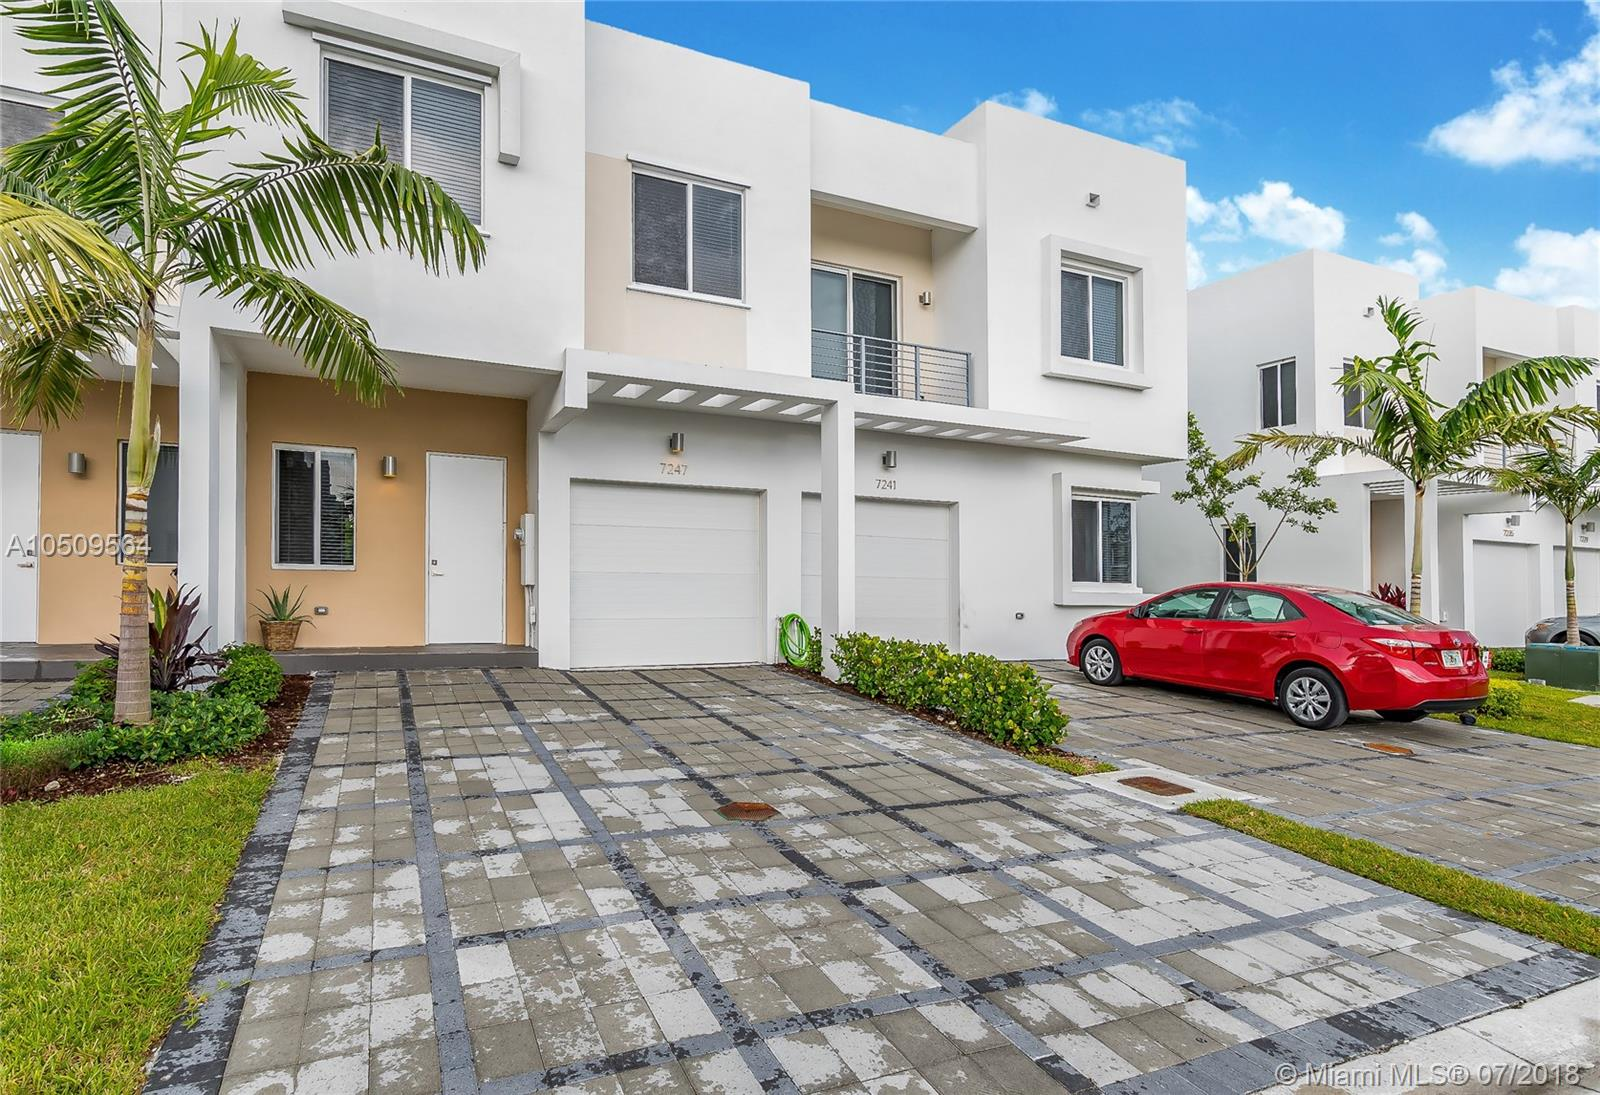 7247 Nw 102nd Pl, Miami FL, 33178